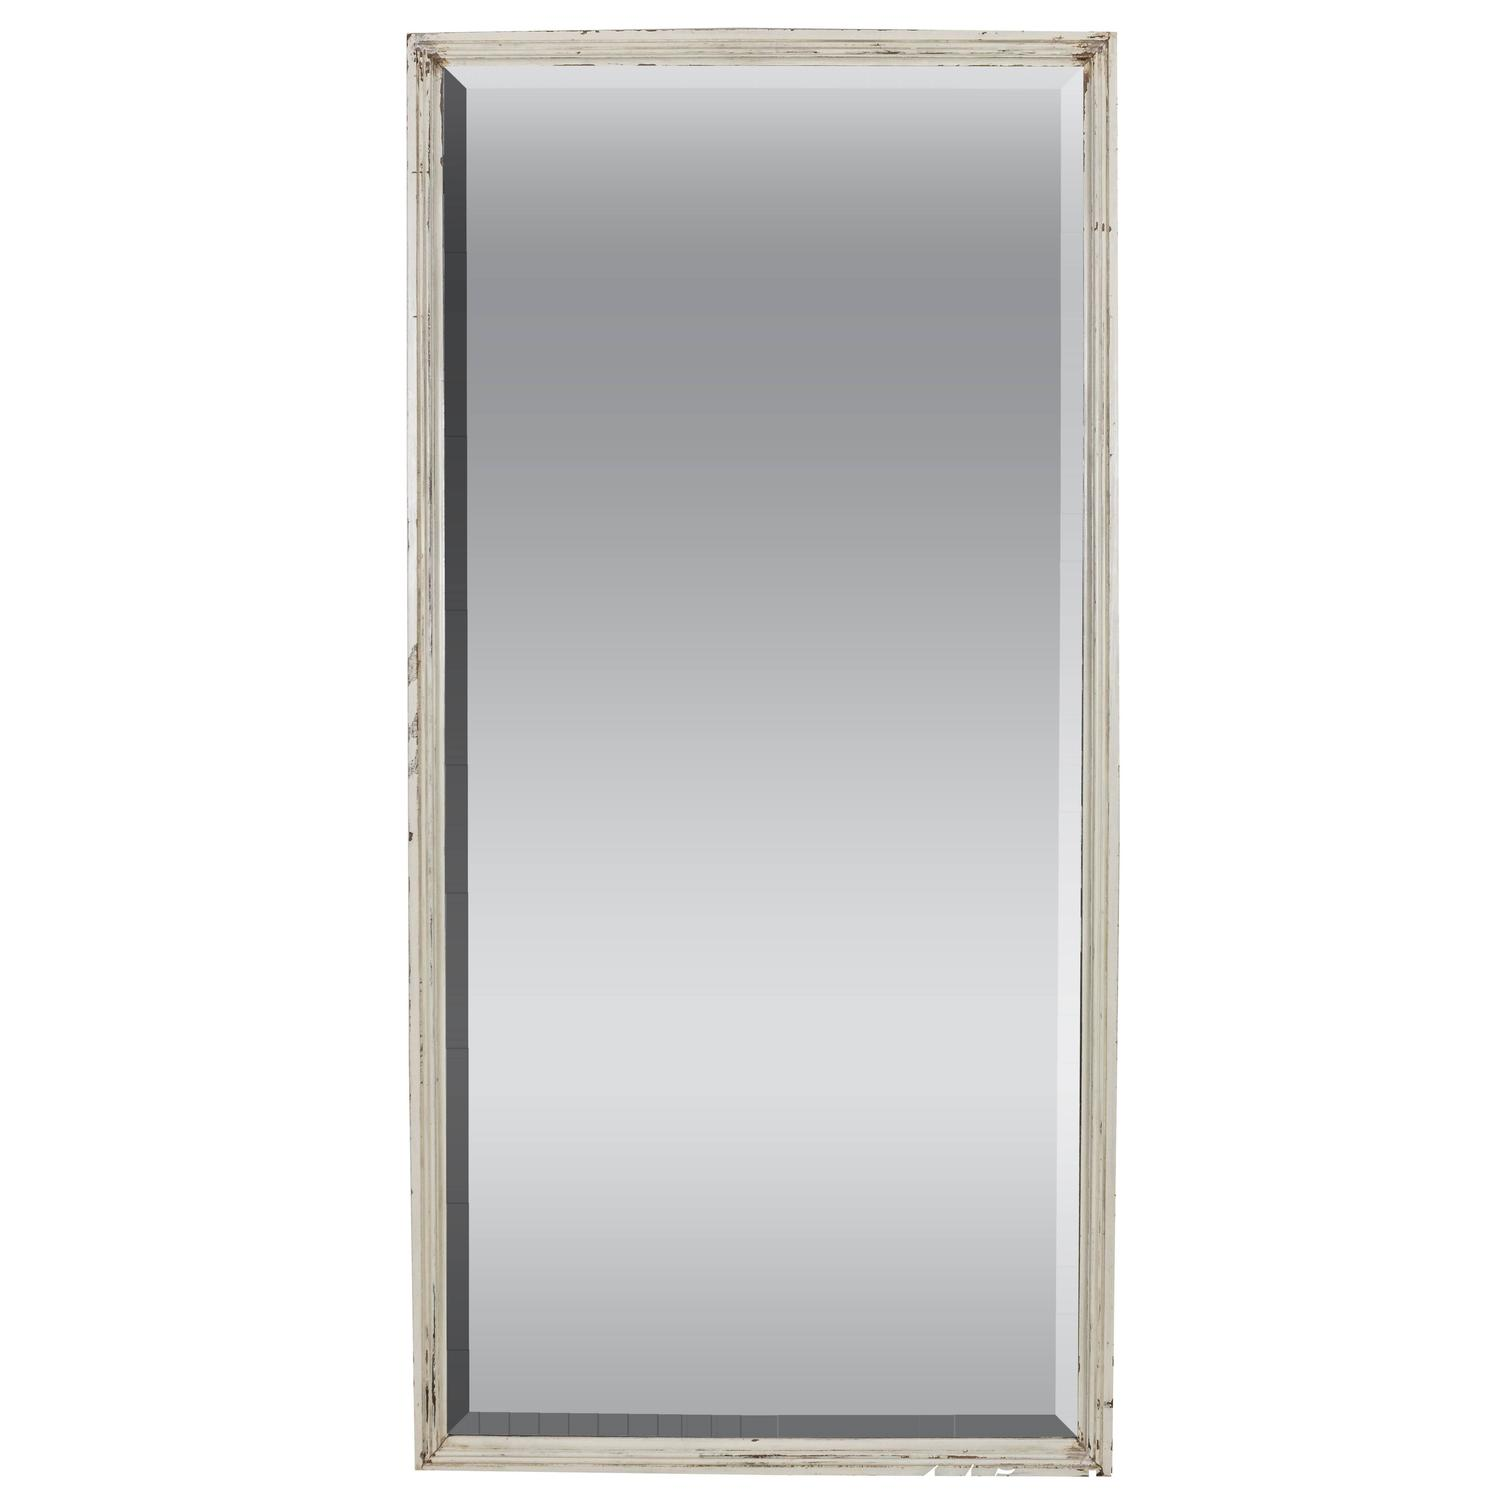 French white framed beveled mirror for sale at 1stdibs for White framed mirrors for sale